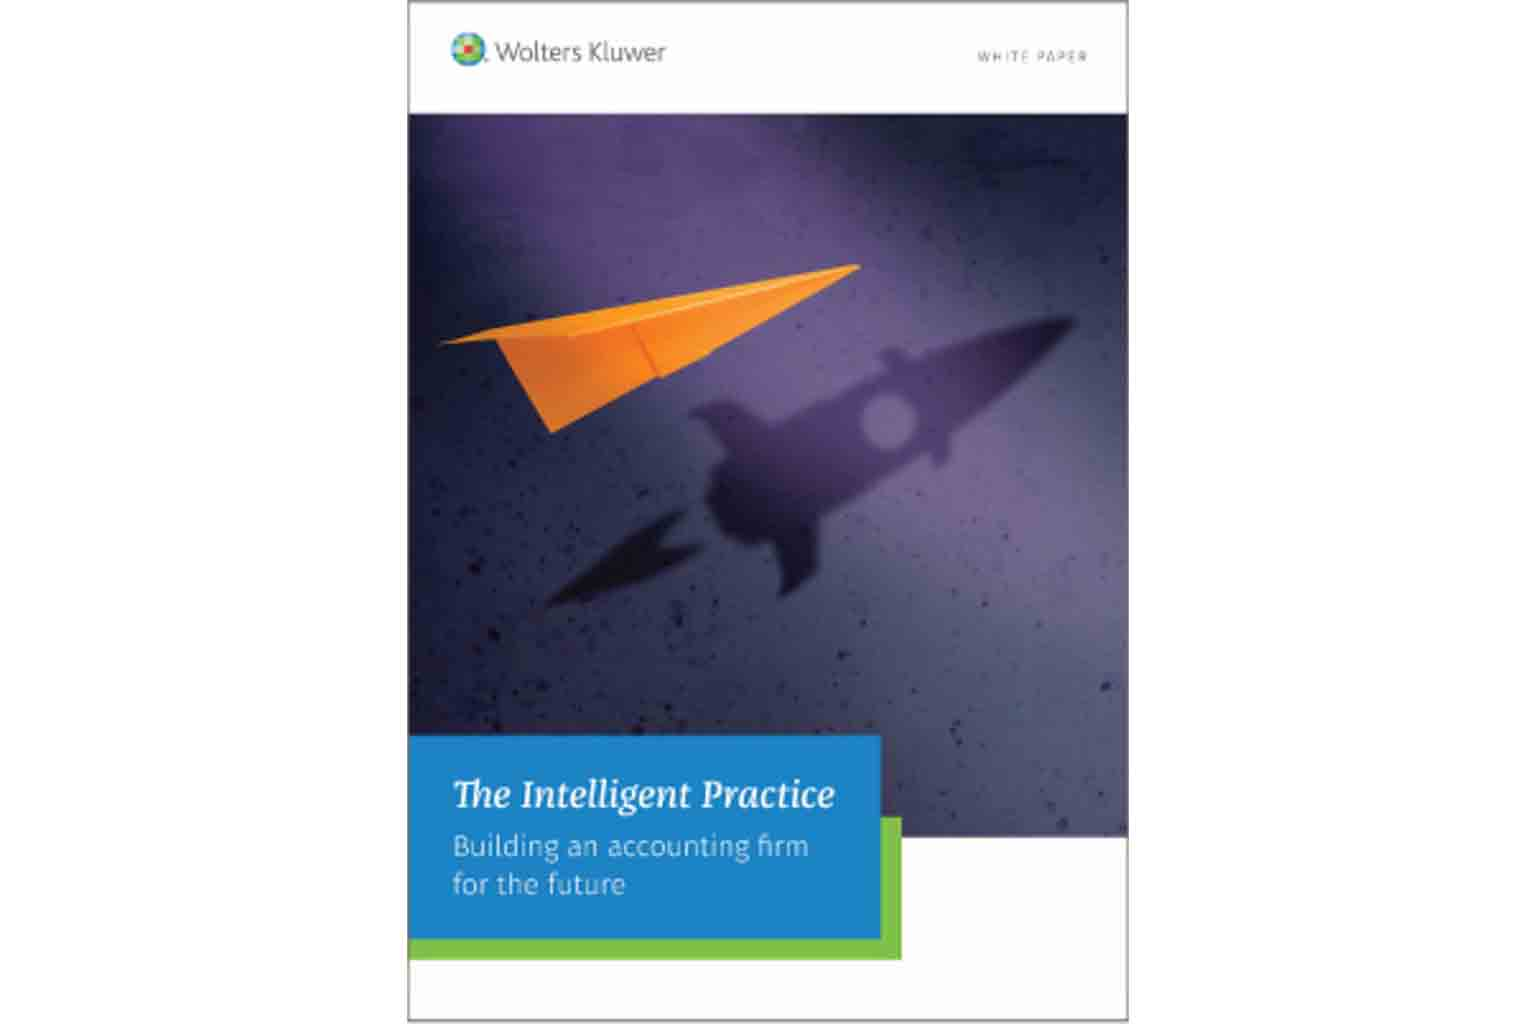 The Intelligent Practice